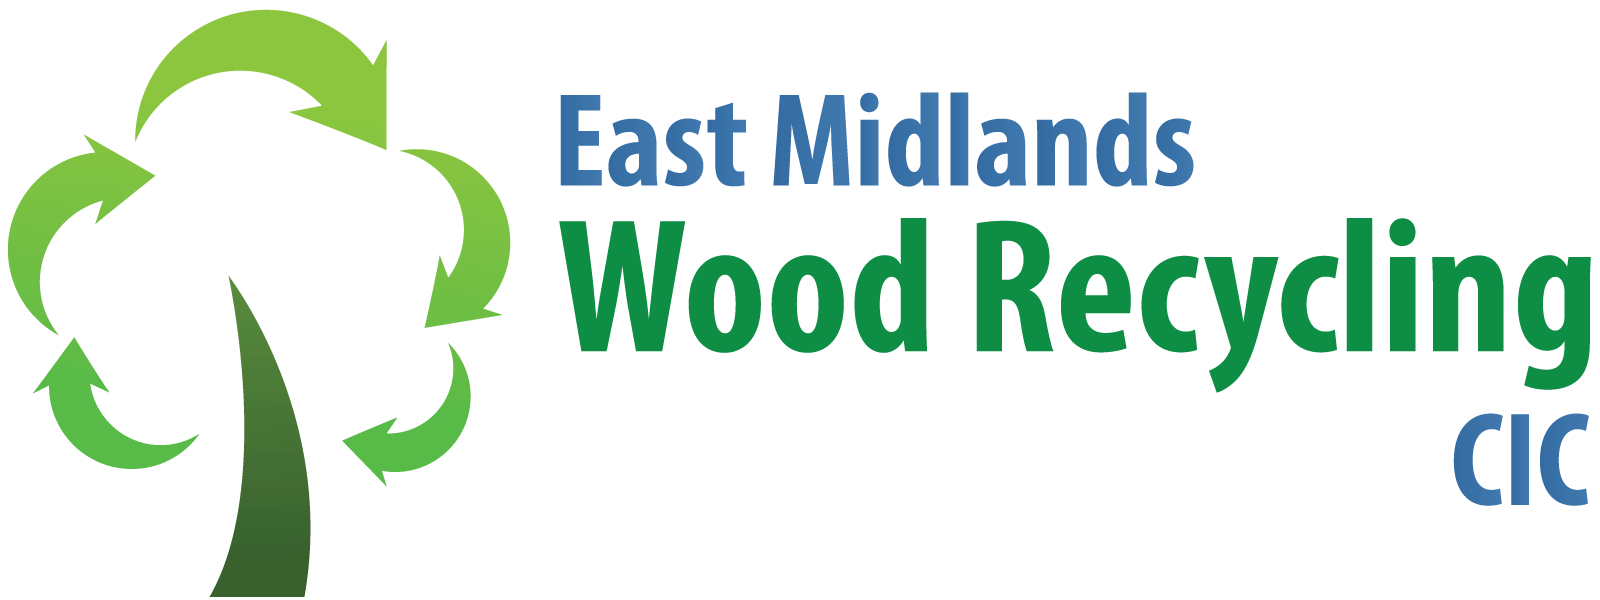 East Midlands Wood Recycling